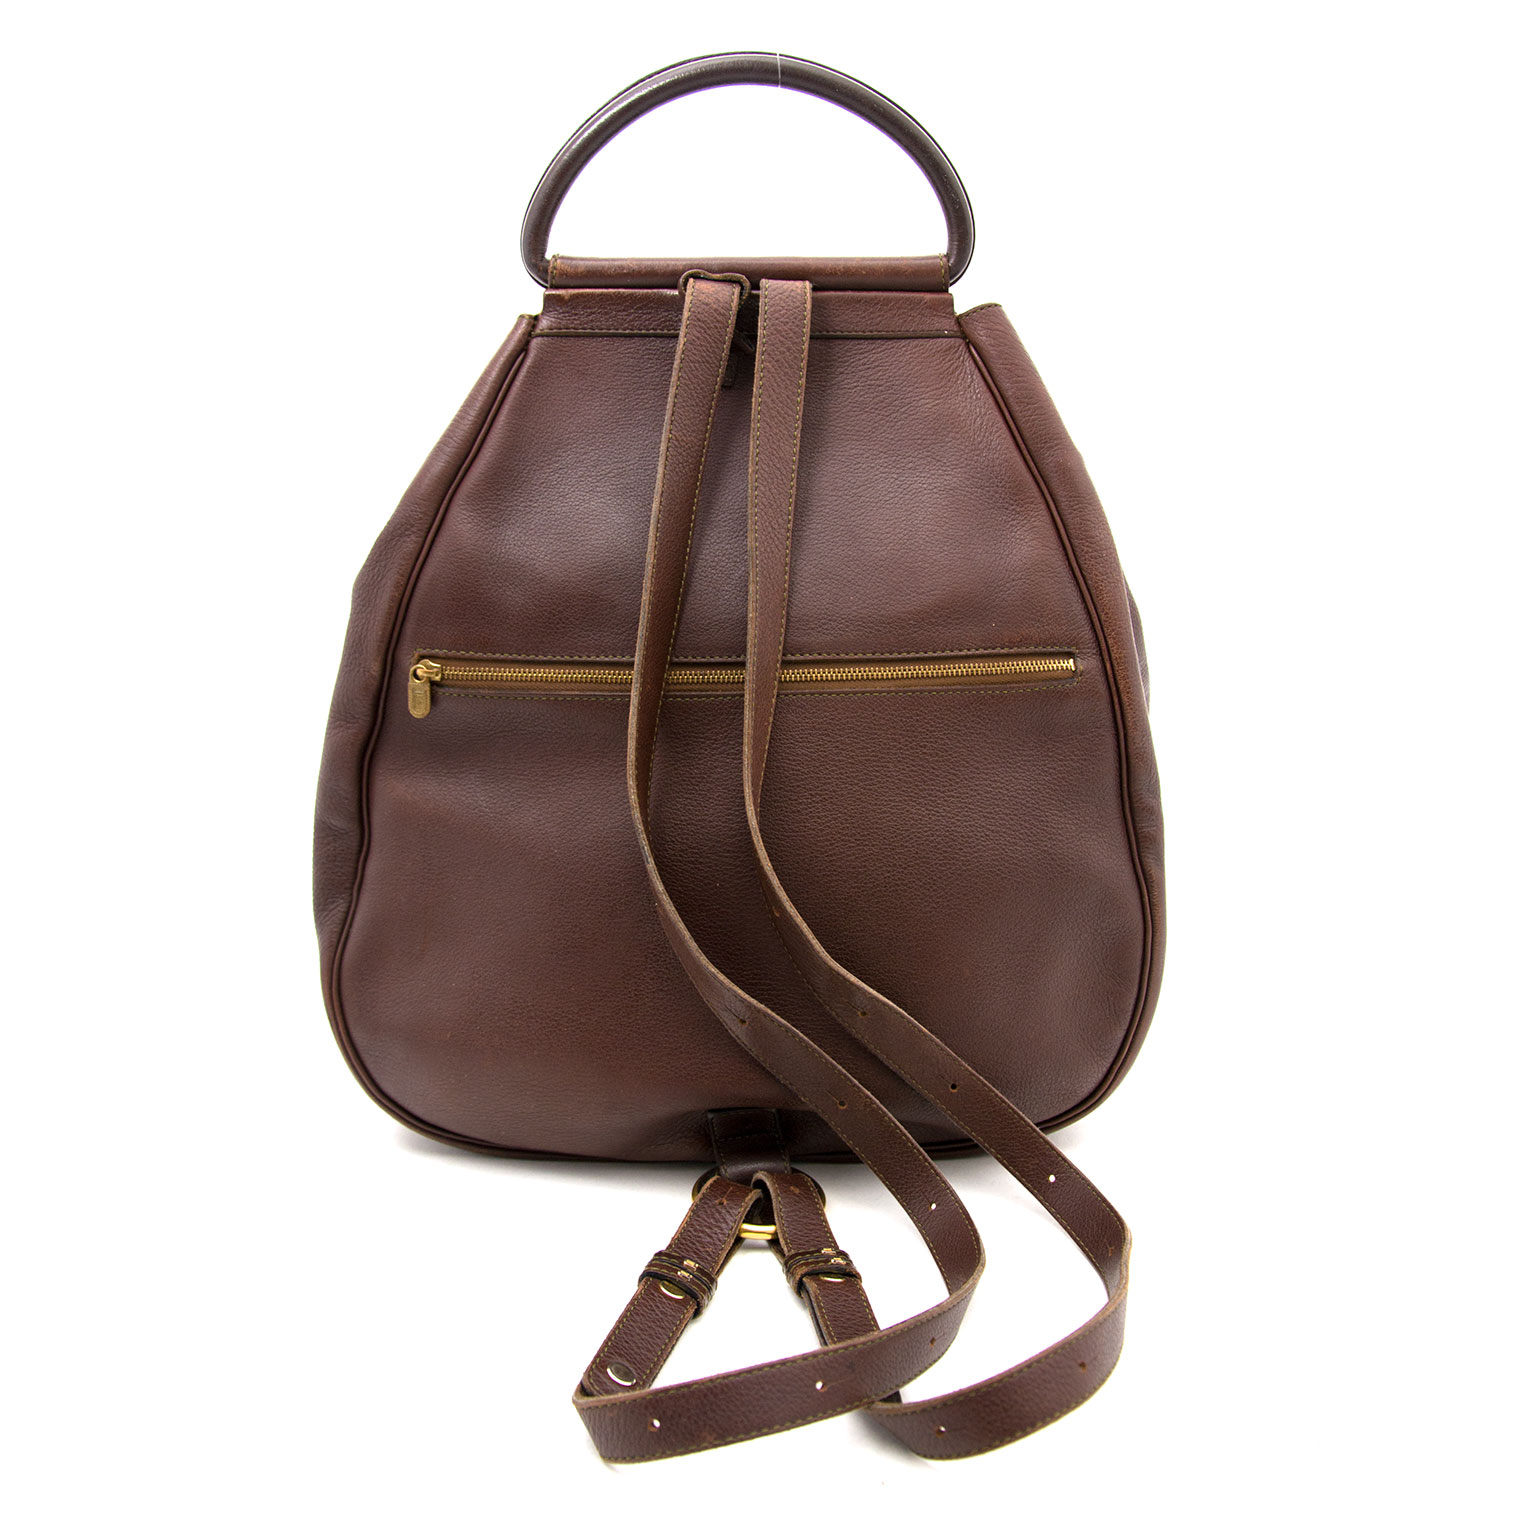 Are you looking for an authentic Delvaux Brown Leather Lucifer GM? Buy safe and secur at Labellov.